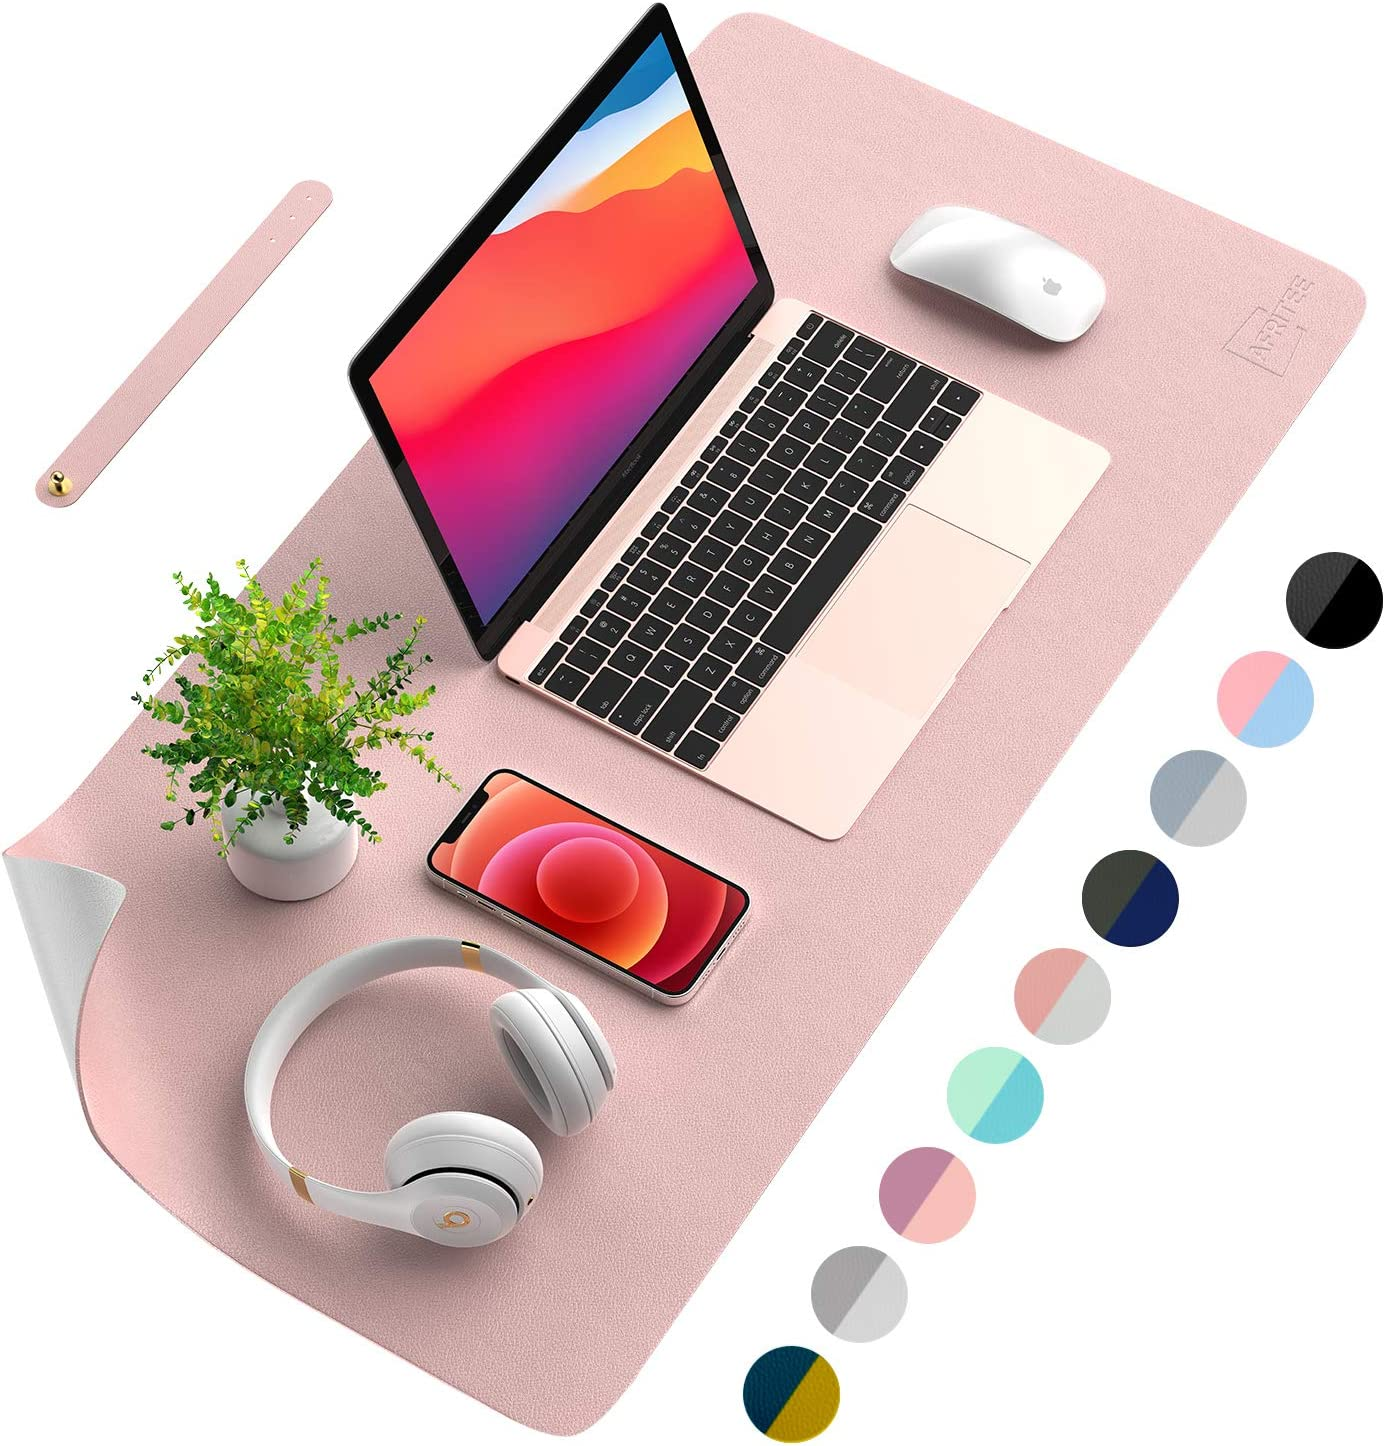 AFRITEE Desk Pad Protector Mat - Dual Side PU Leather Desk Mat Large Mouse Pad Waterproof Desk Organizers Office Home Table Decor Gaming Writing Mat Smooth (Rose Pink/Silver, 35.4